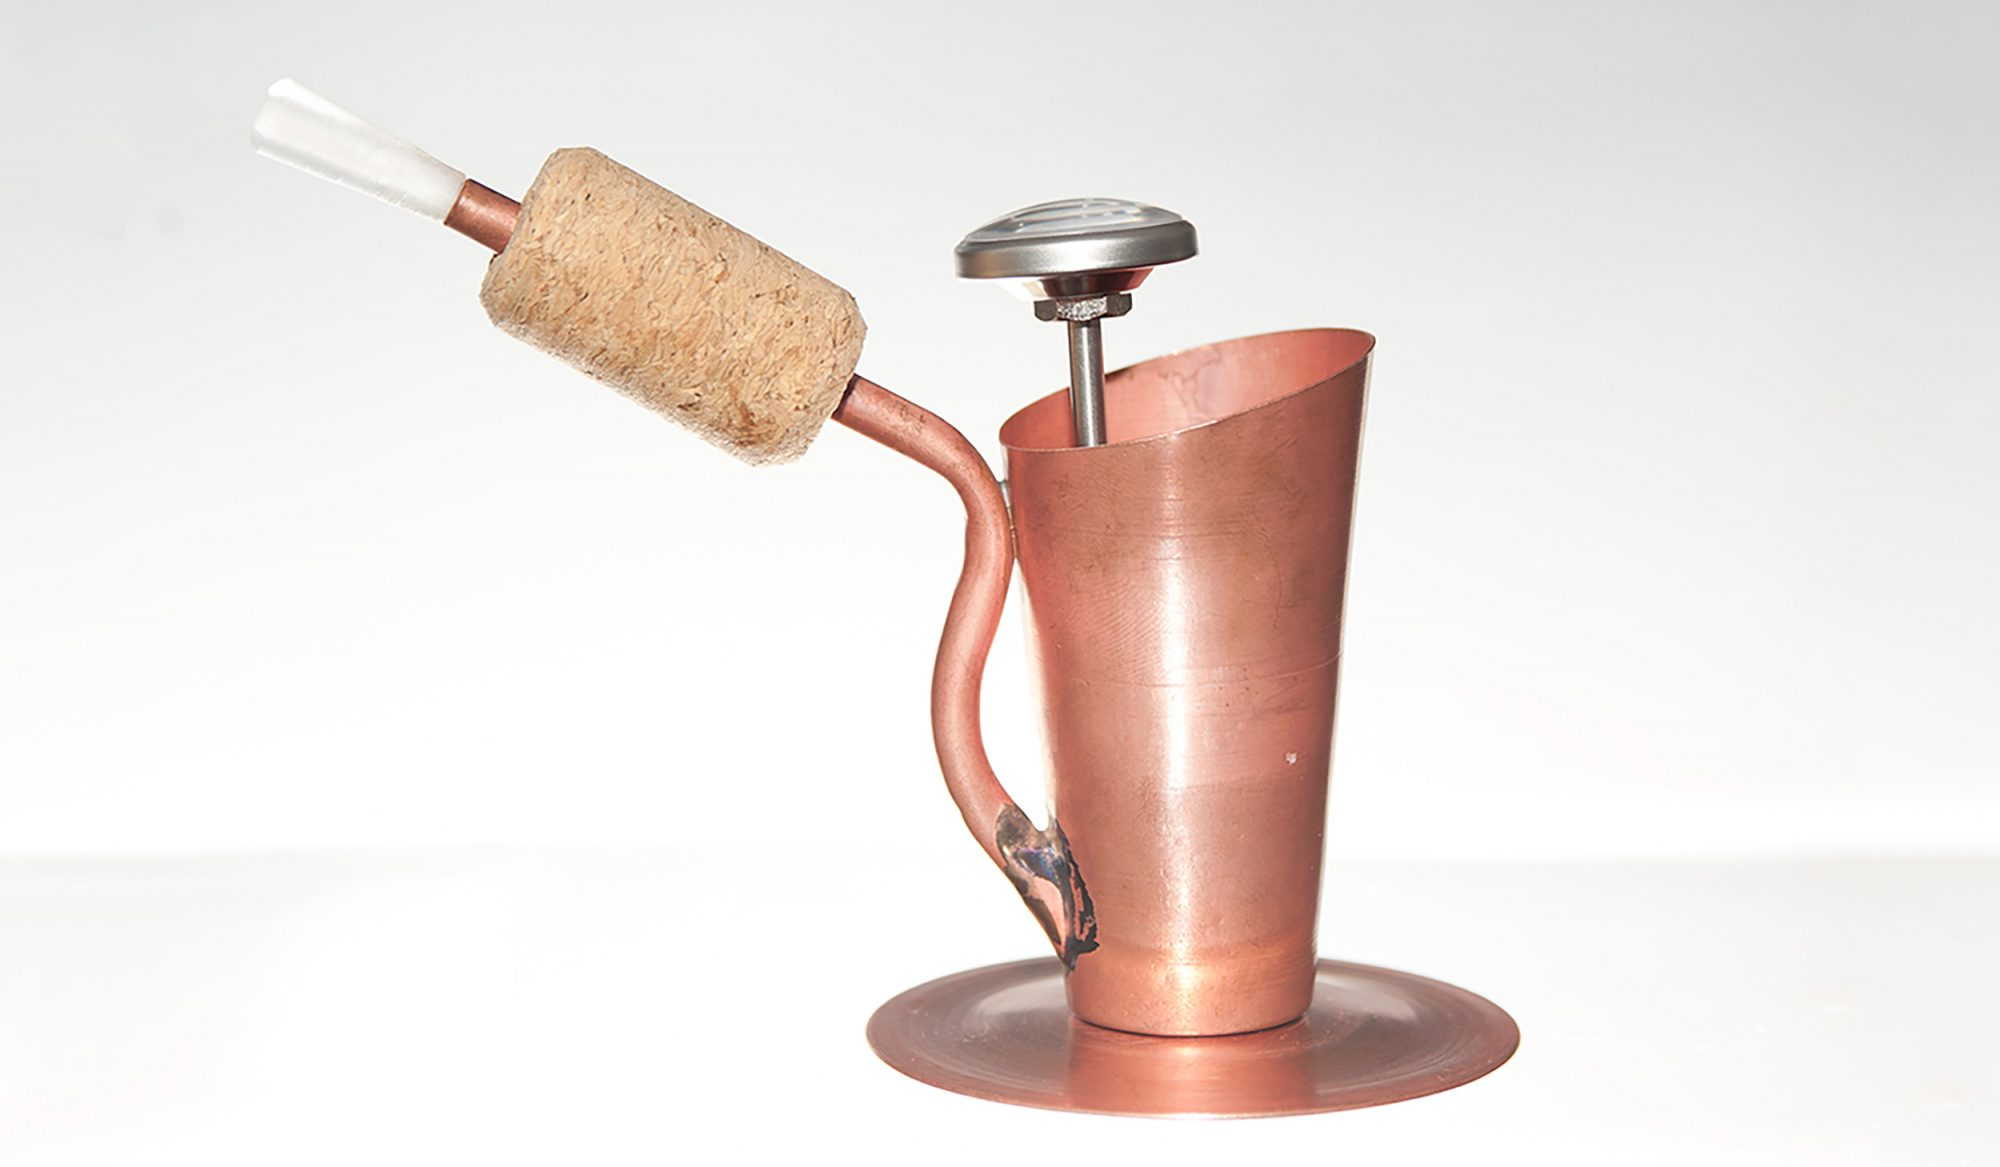 EC: Now You Can Freebase Coffee with This Coffee Pipe